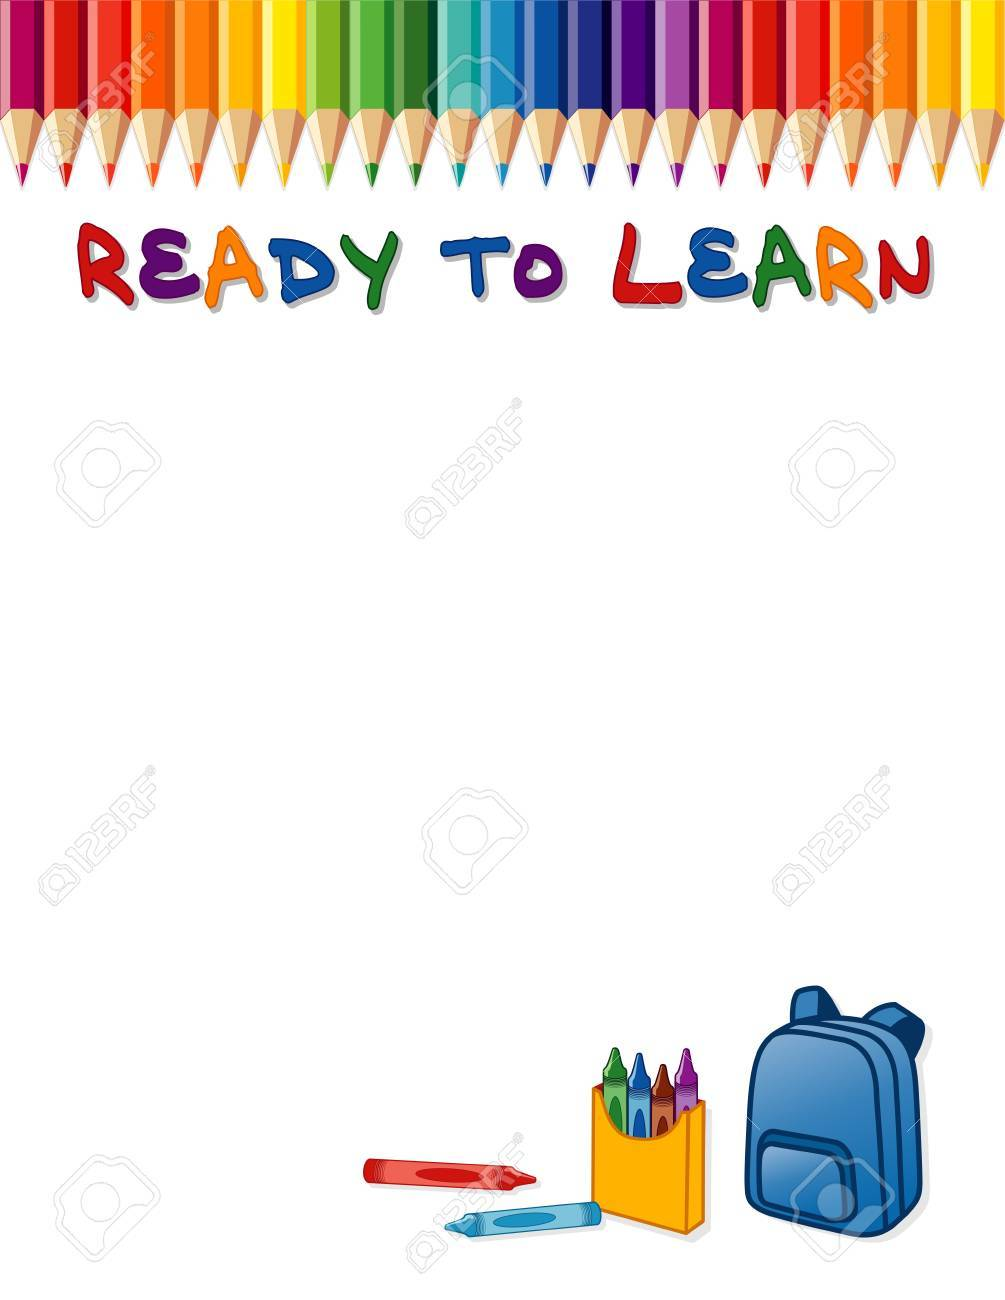 ready to learn poster, rainbow colored pencil border, crayons